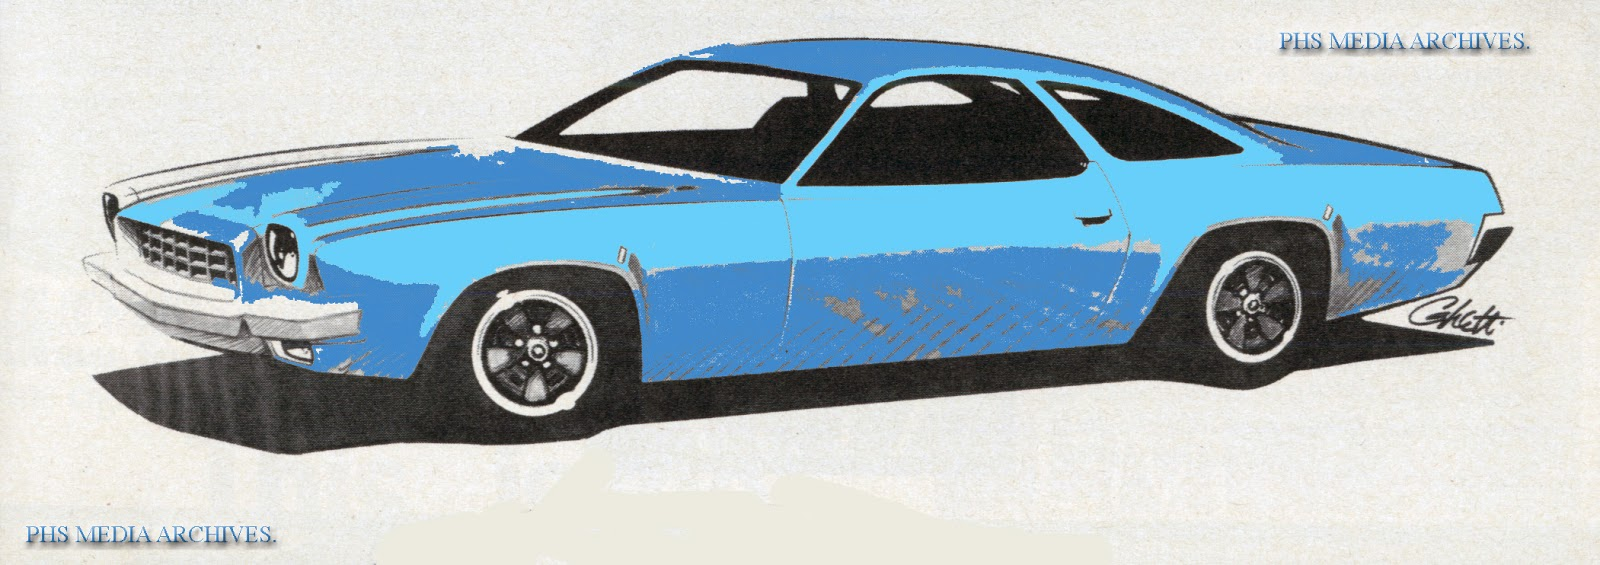 medium resolution of 73 chevelle engine diagram wiring library 1973 chevelle ss a ghost muscle car